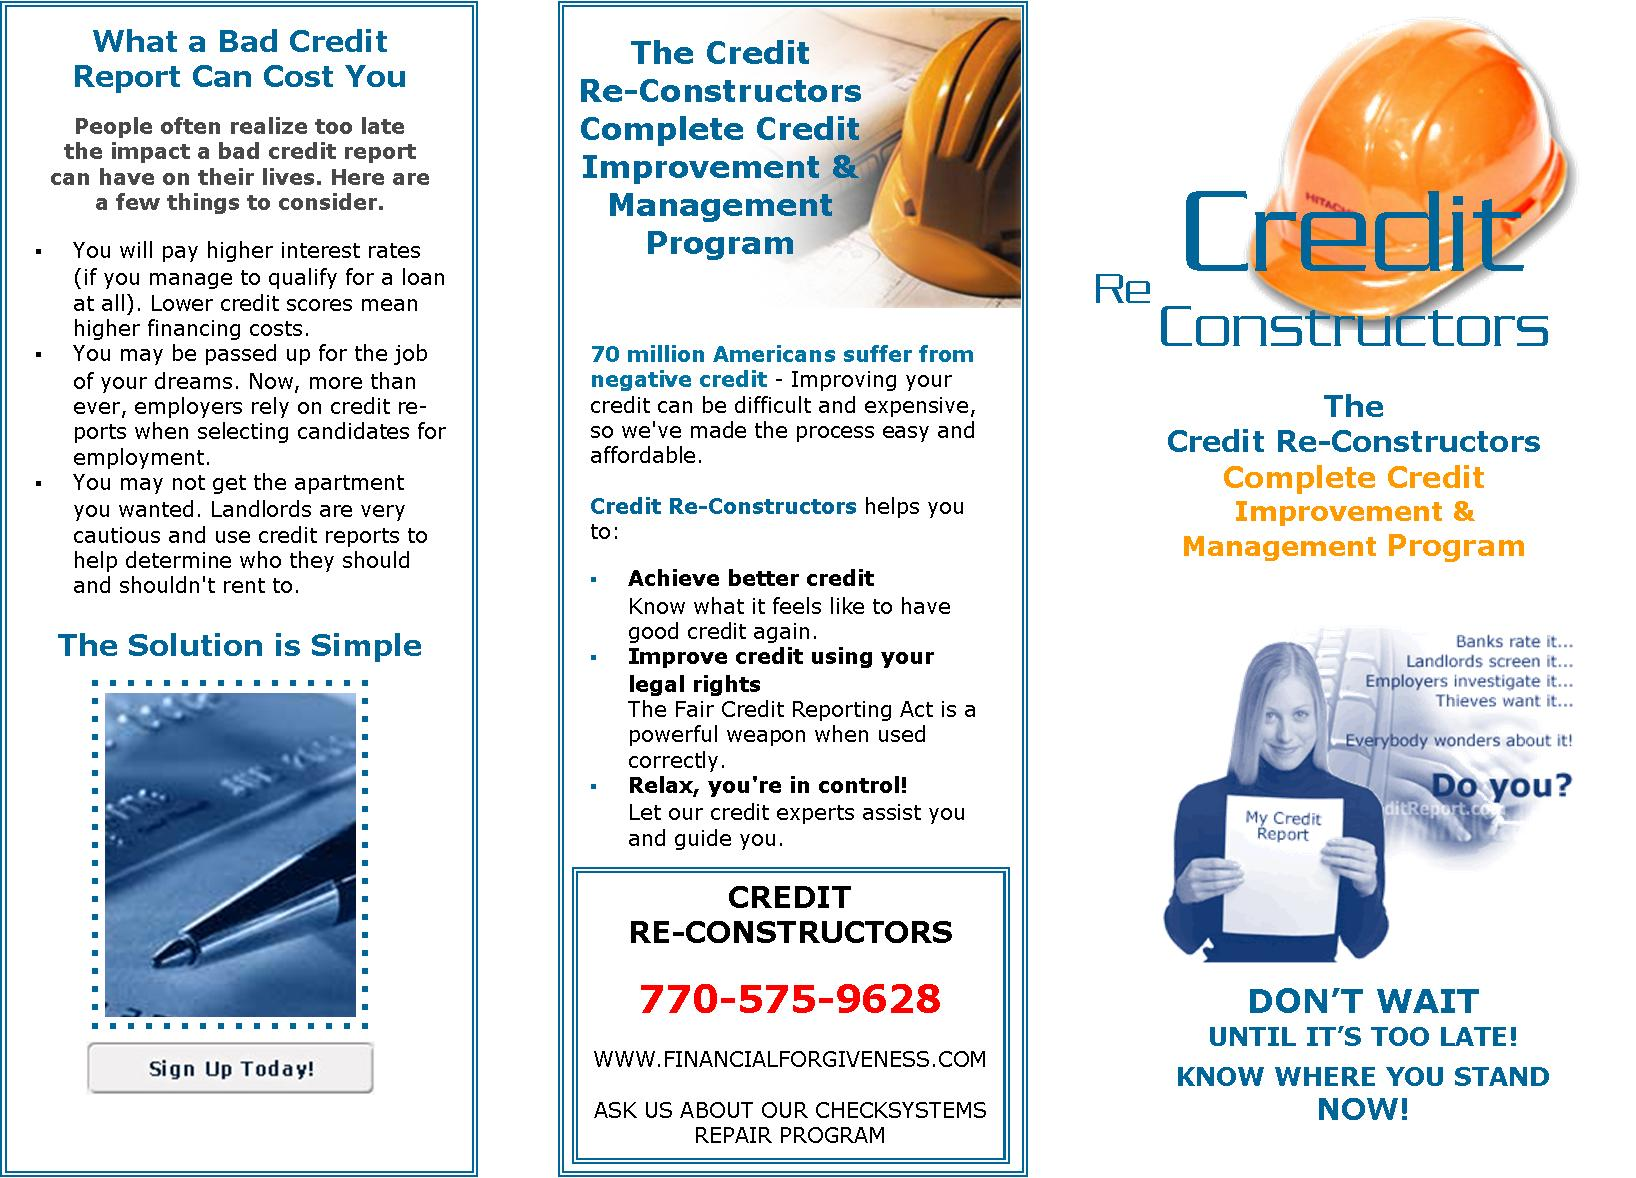 Project: Brochure - Credit ReConstructors